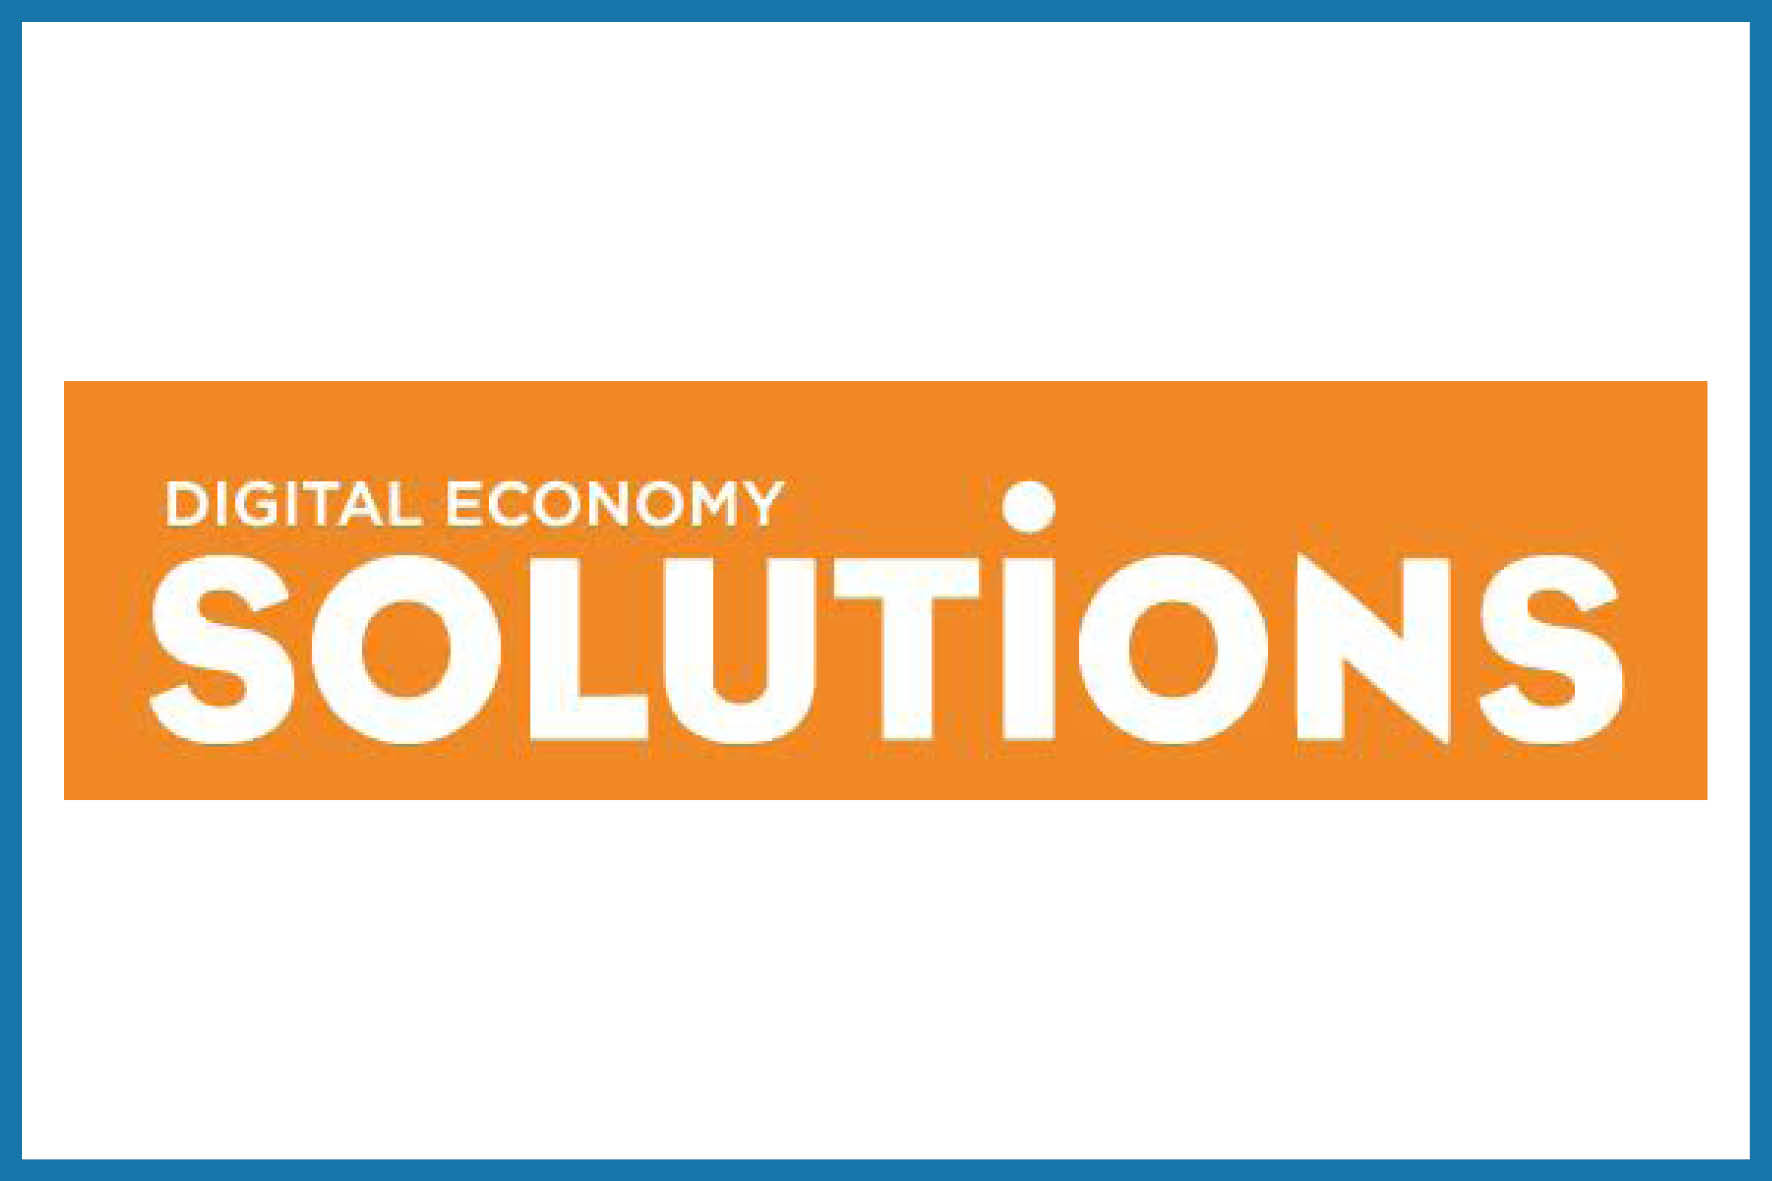 ict-infra-digital-economy-solutions